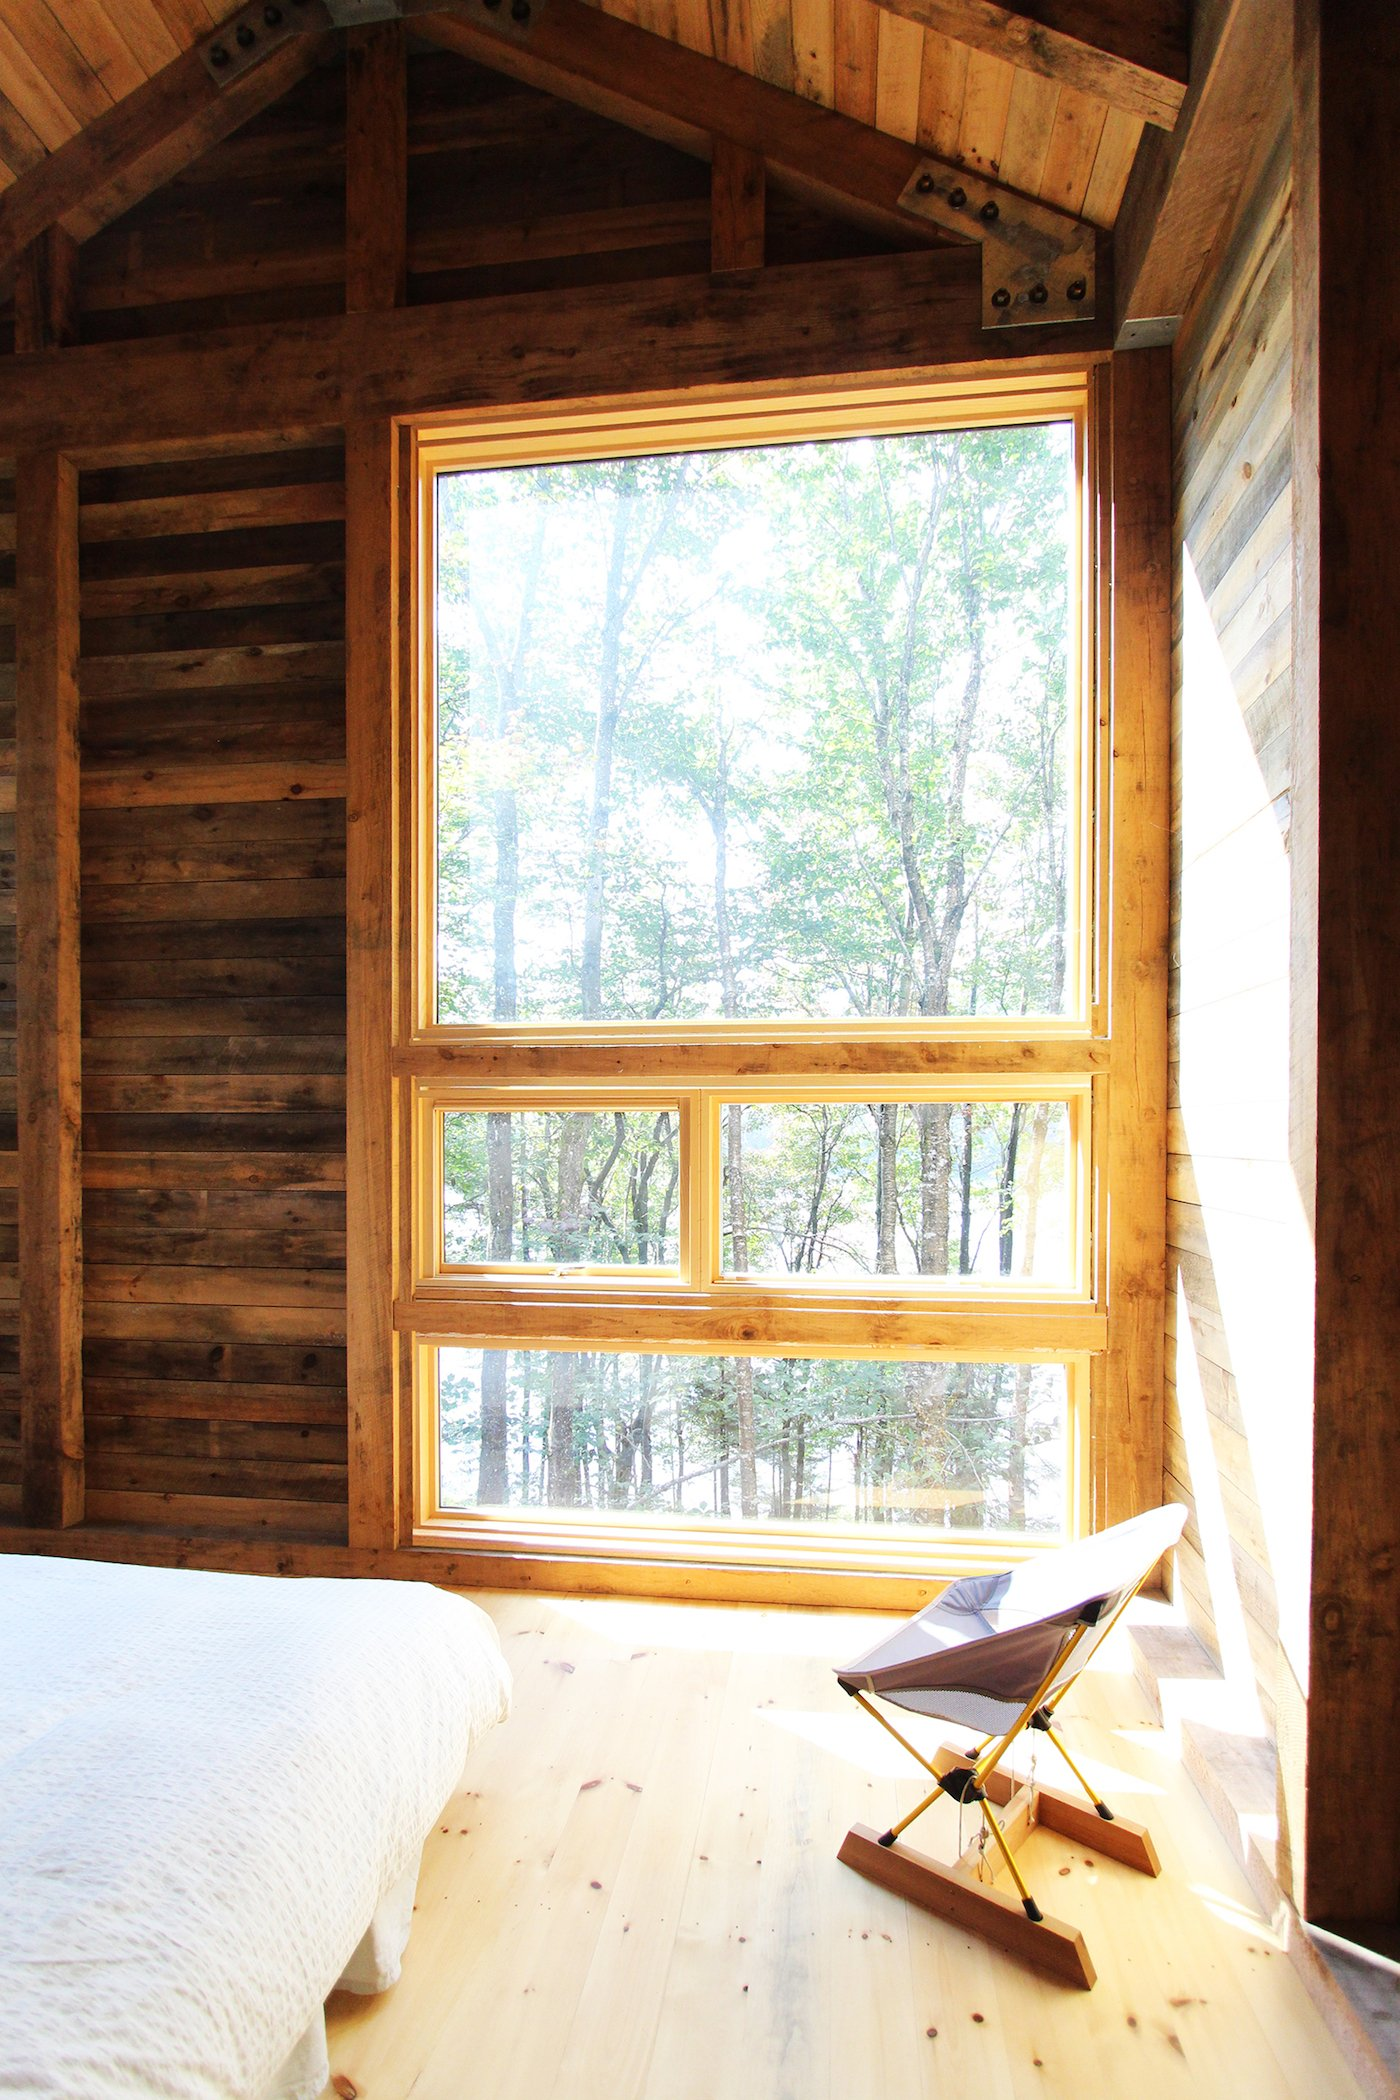 Timber lined bedroom with view to woods